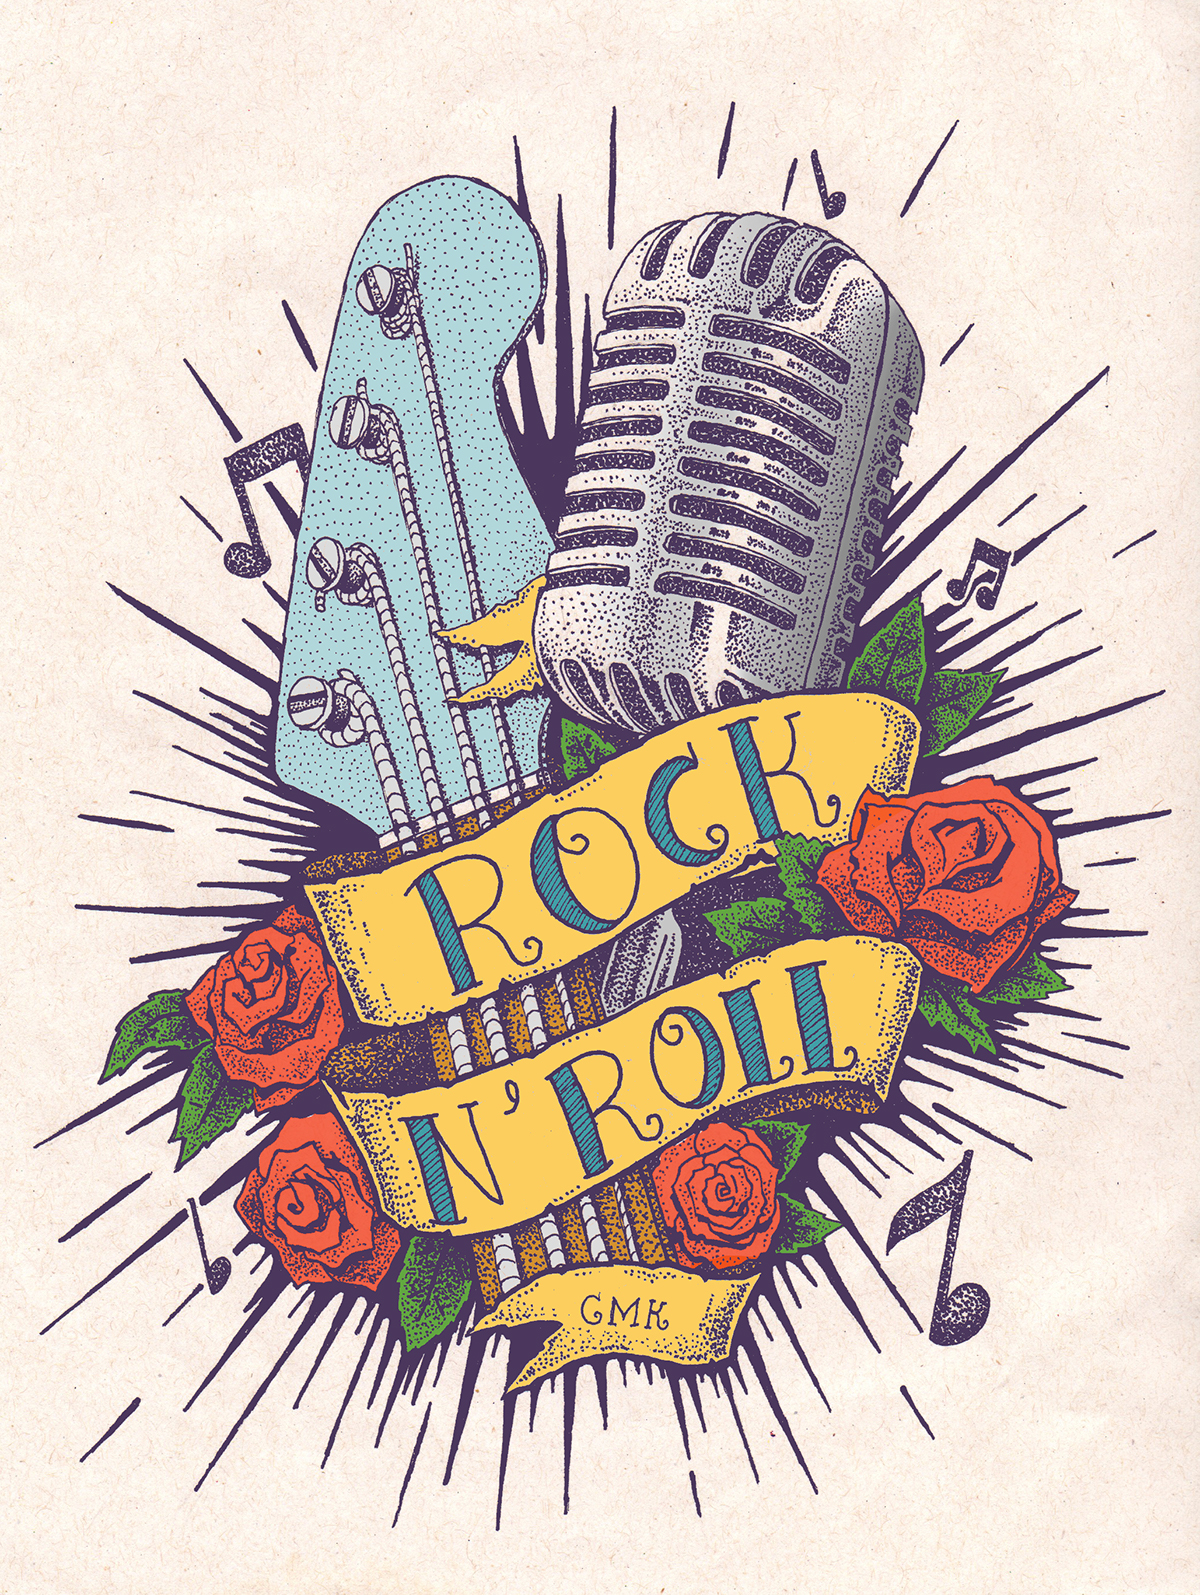 Drawn microphone rockabilly On and Pin guitar more